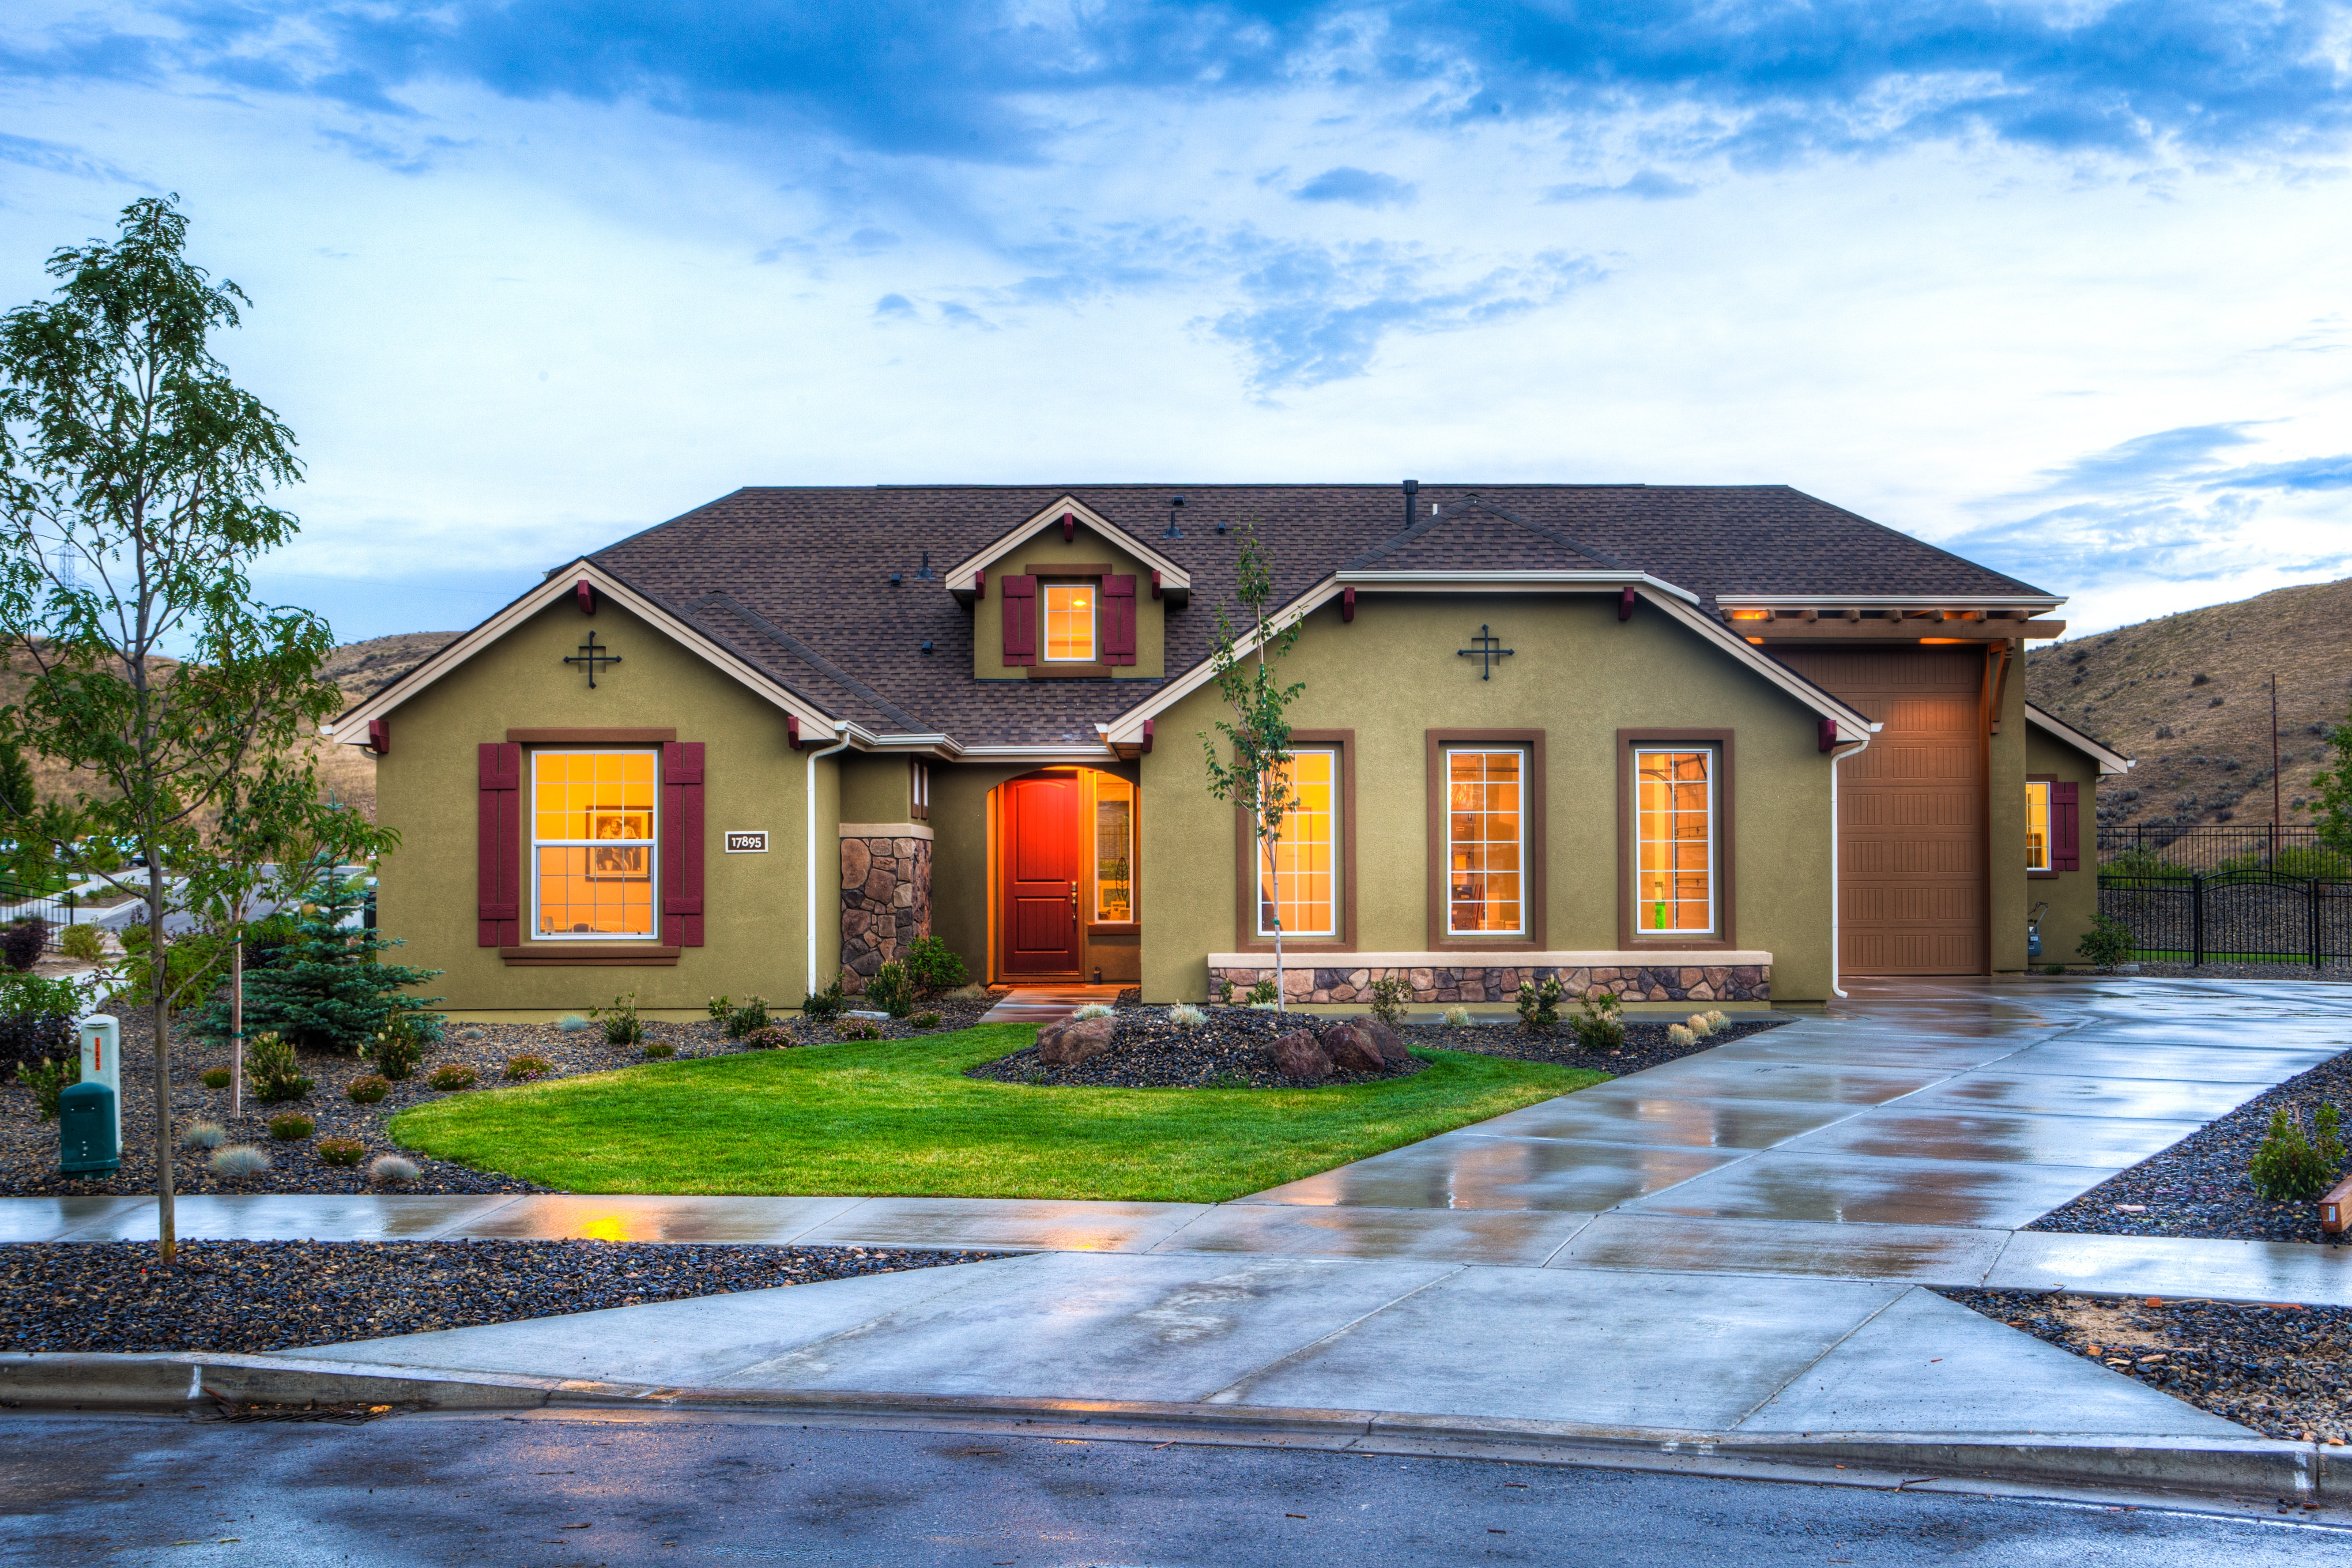 Homes for Sale in St. George, UT